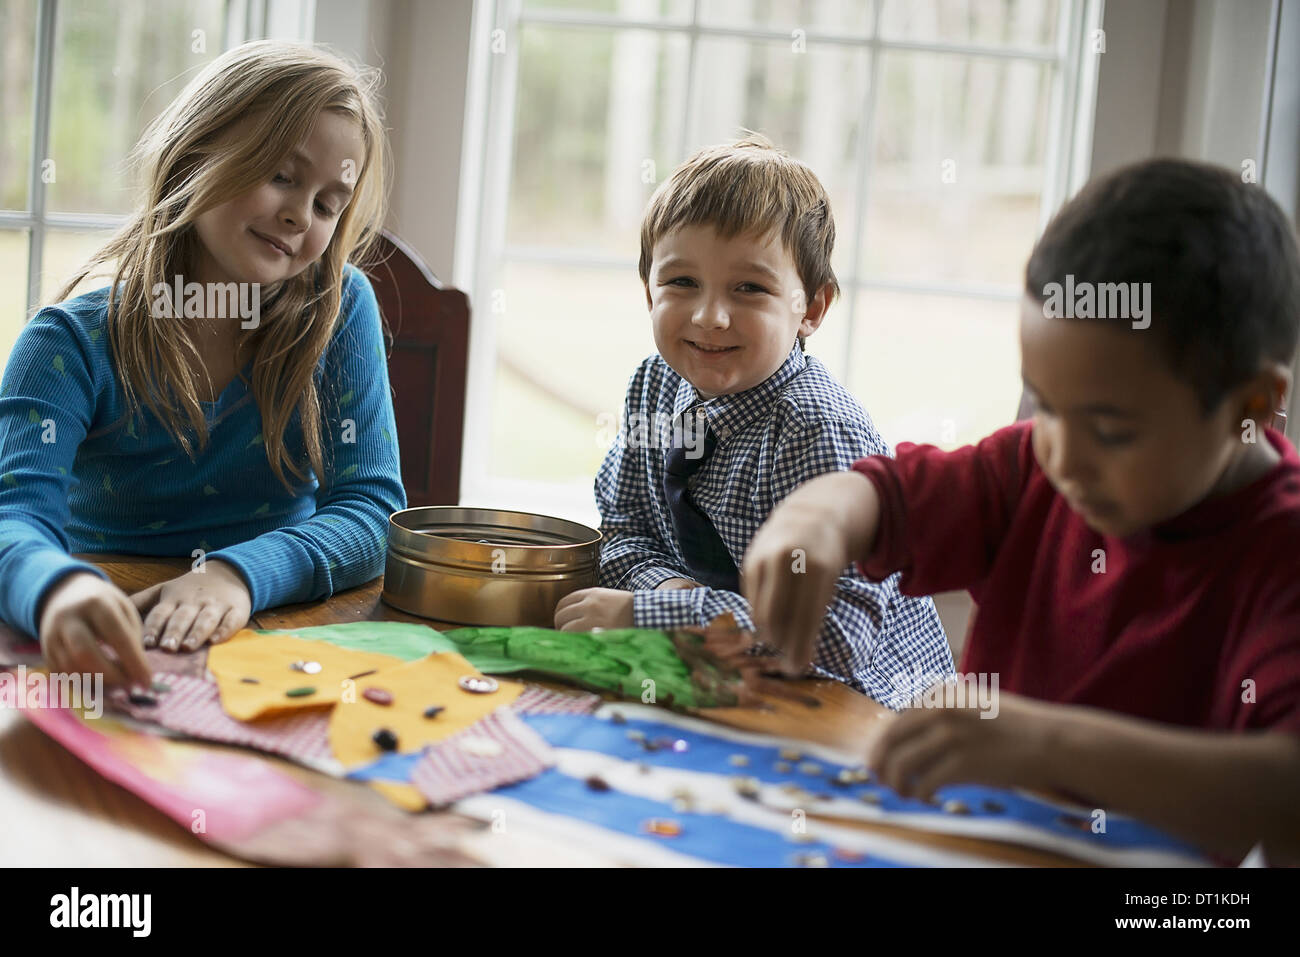 Children in a family home Three children creating pictures with glue and stickers Craftwork - Stock Image